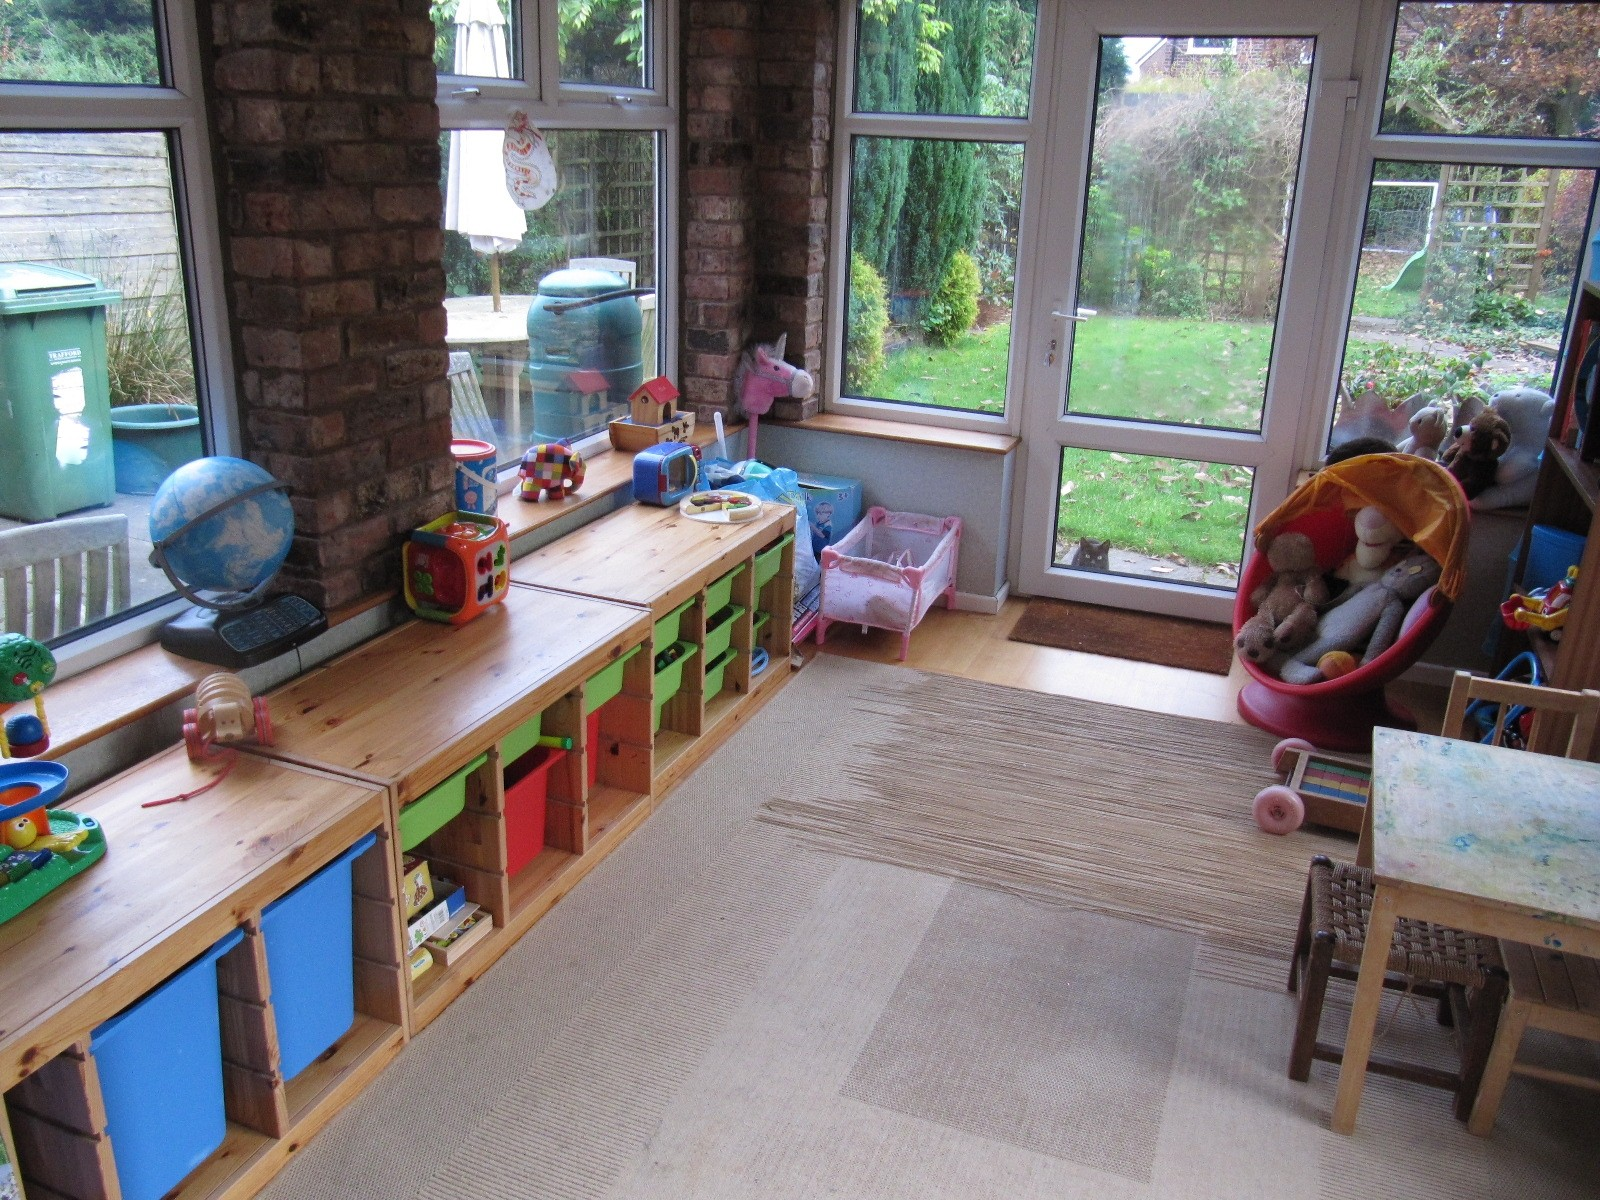 Decluttered playroom